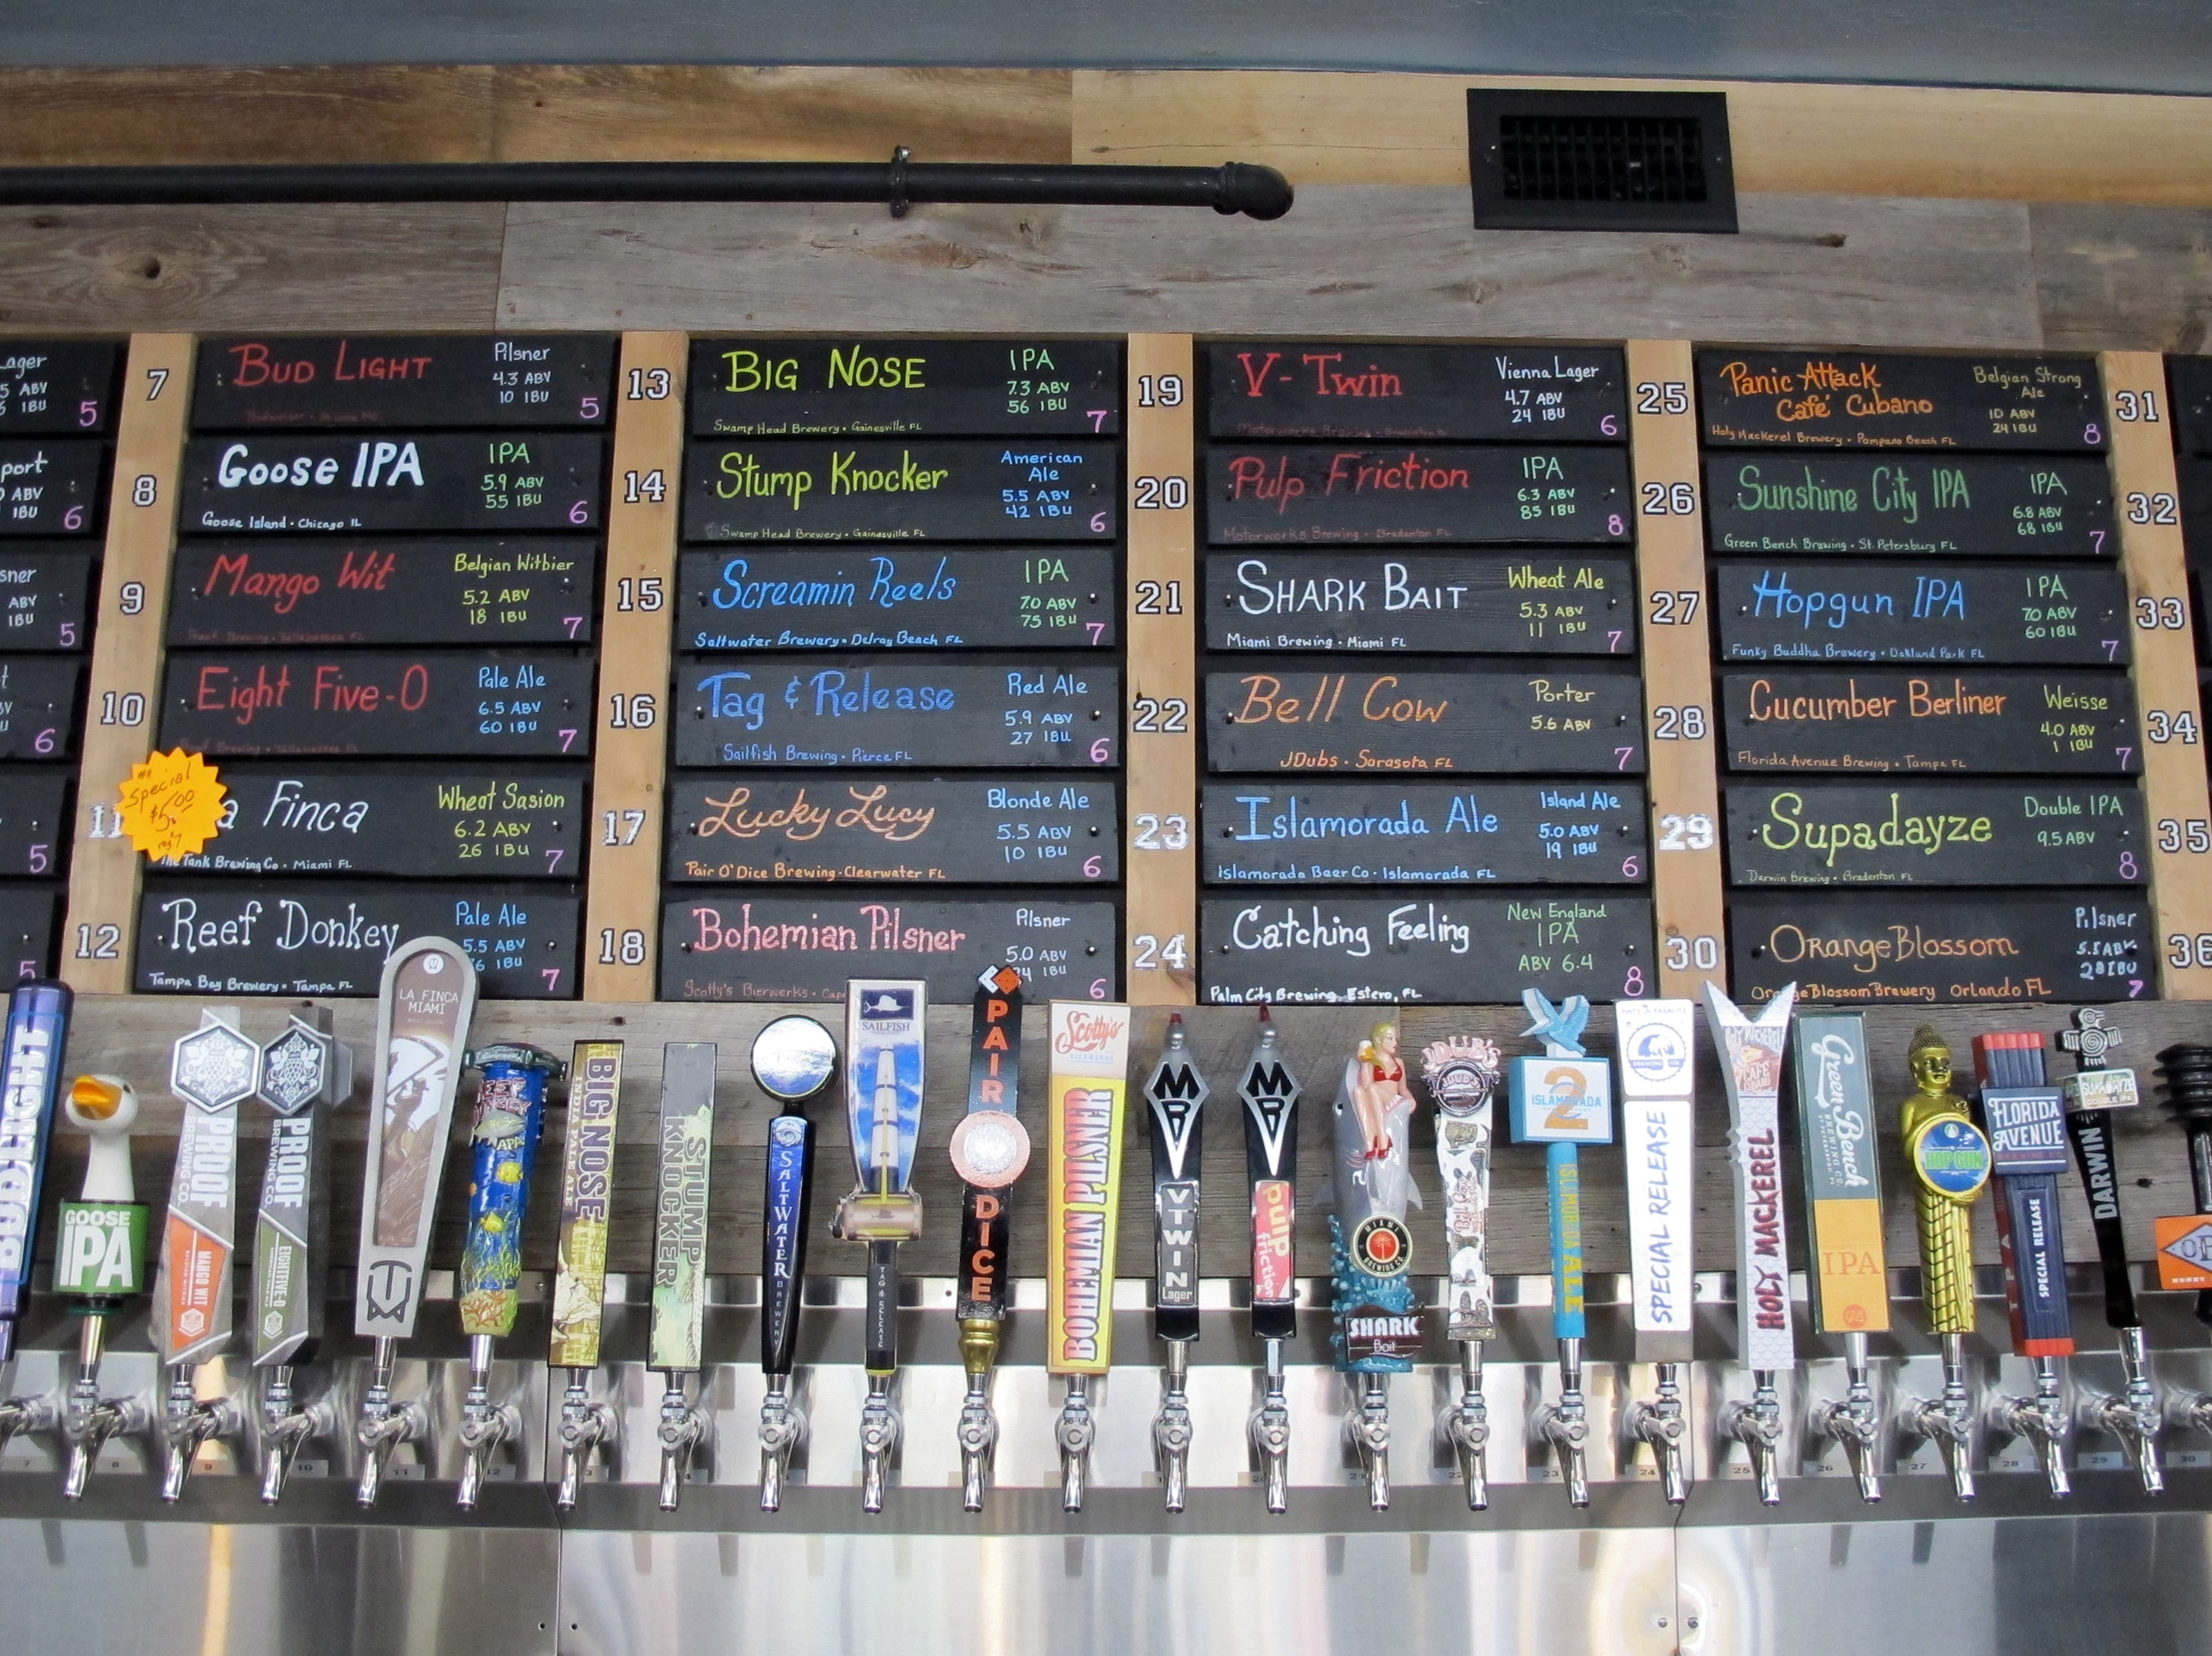 Southern Latitudes Brewpub & Grub has more than 70 beers on tap at Bayfront in Naples.